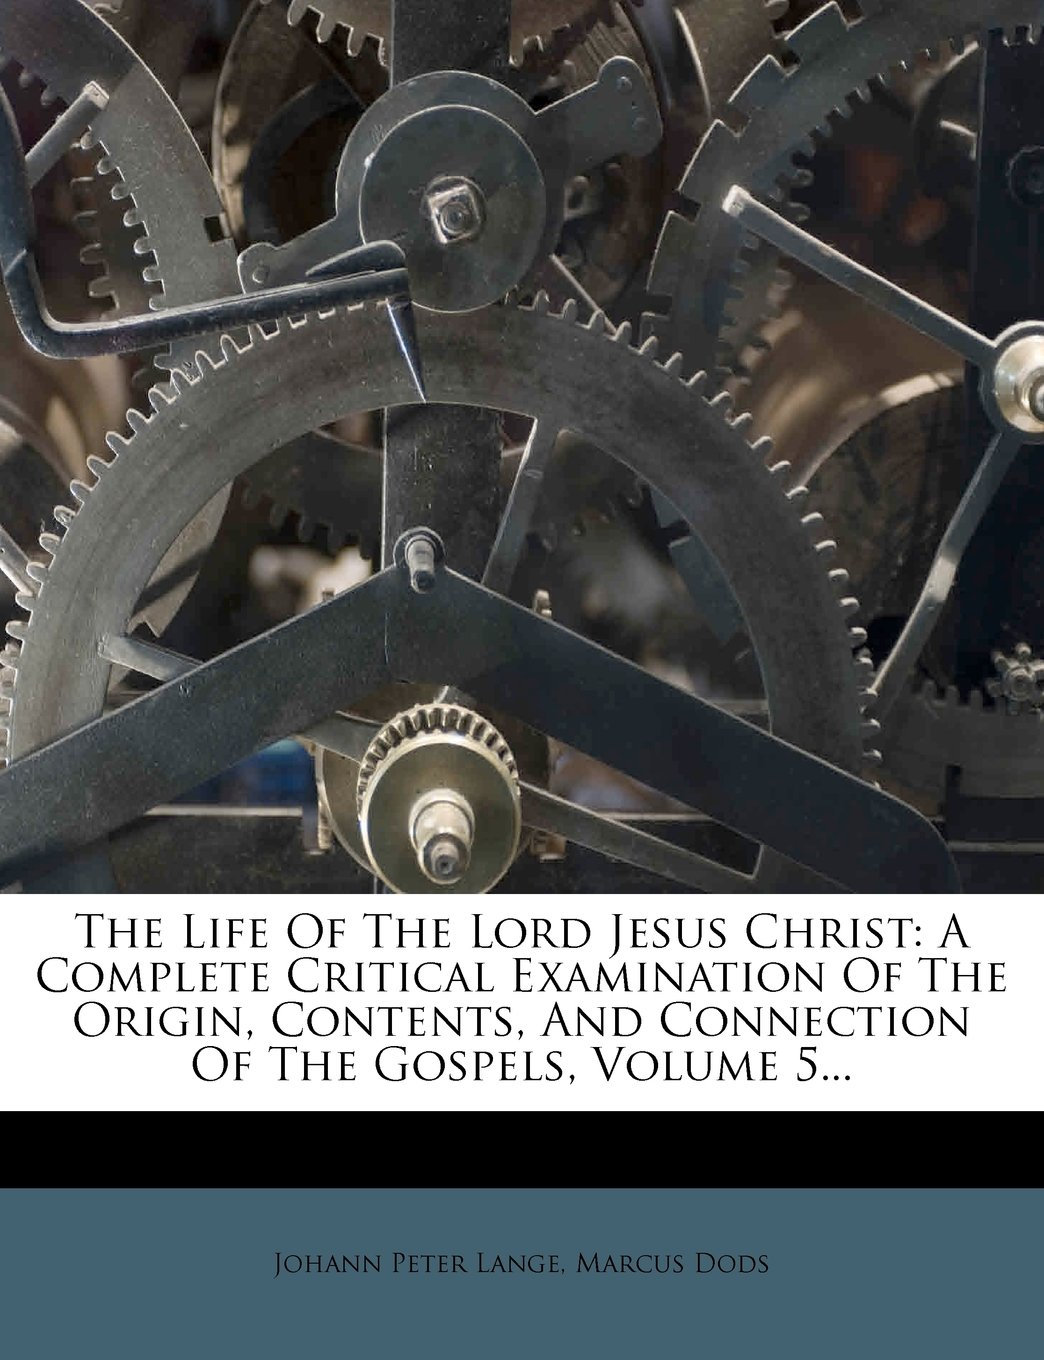 The Life Of The Lord Jesus Christ: A Complete Critical Examination Of The Origin, Contents, And Connection Of The Gospels, Volume 5... pdf epub